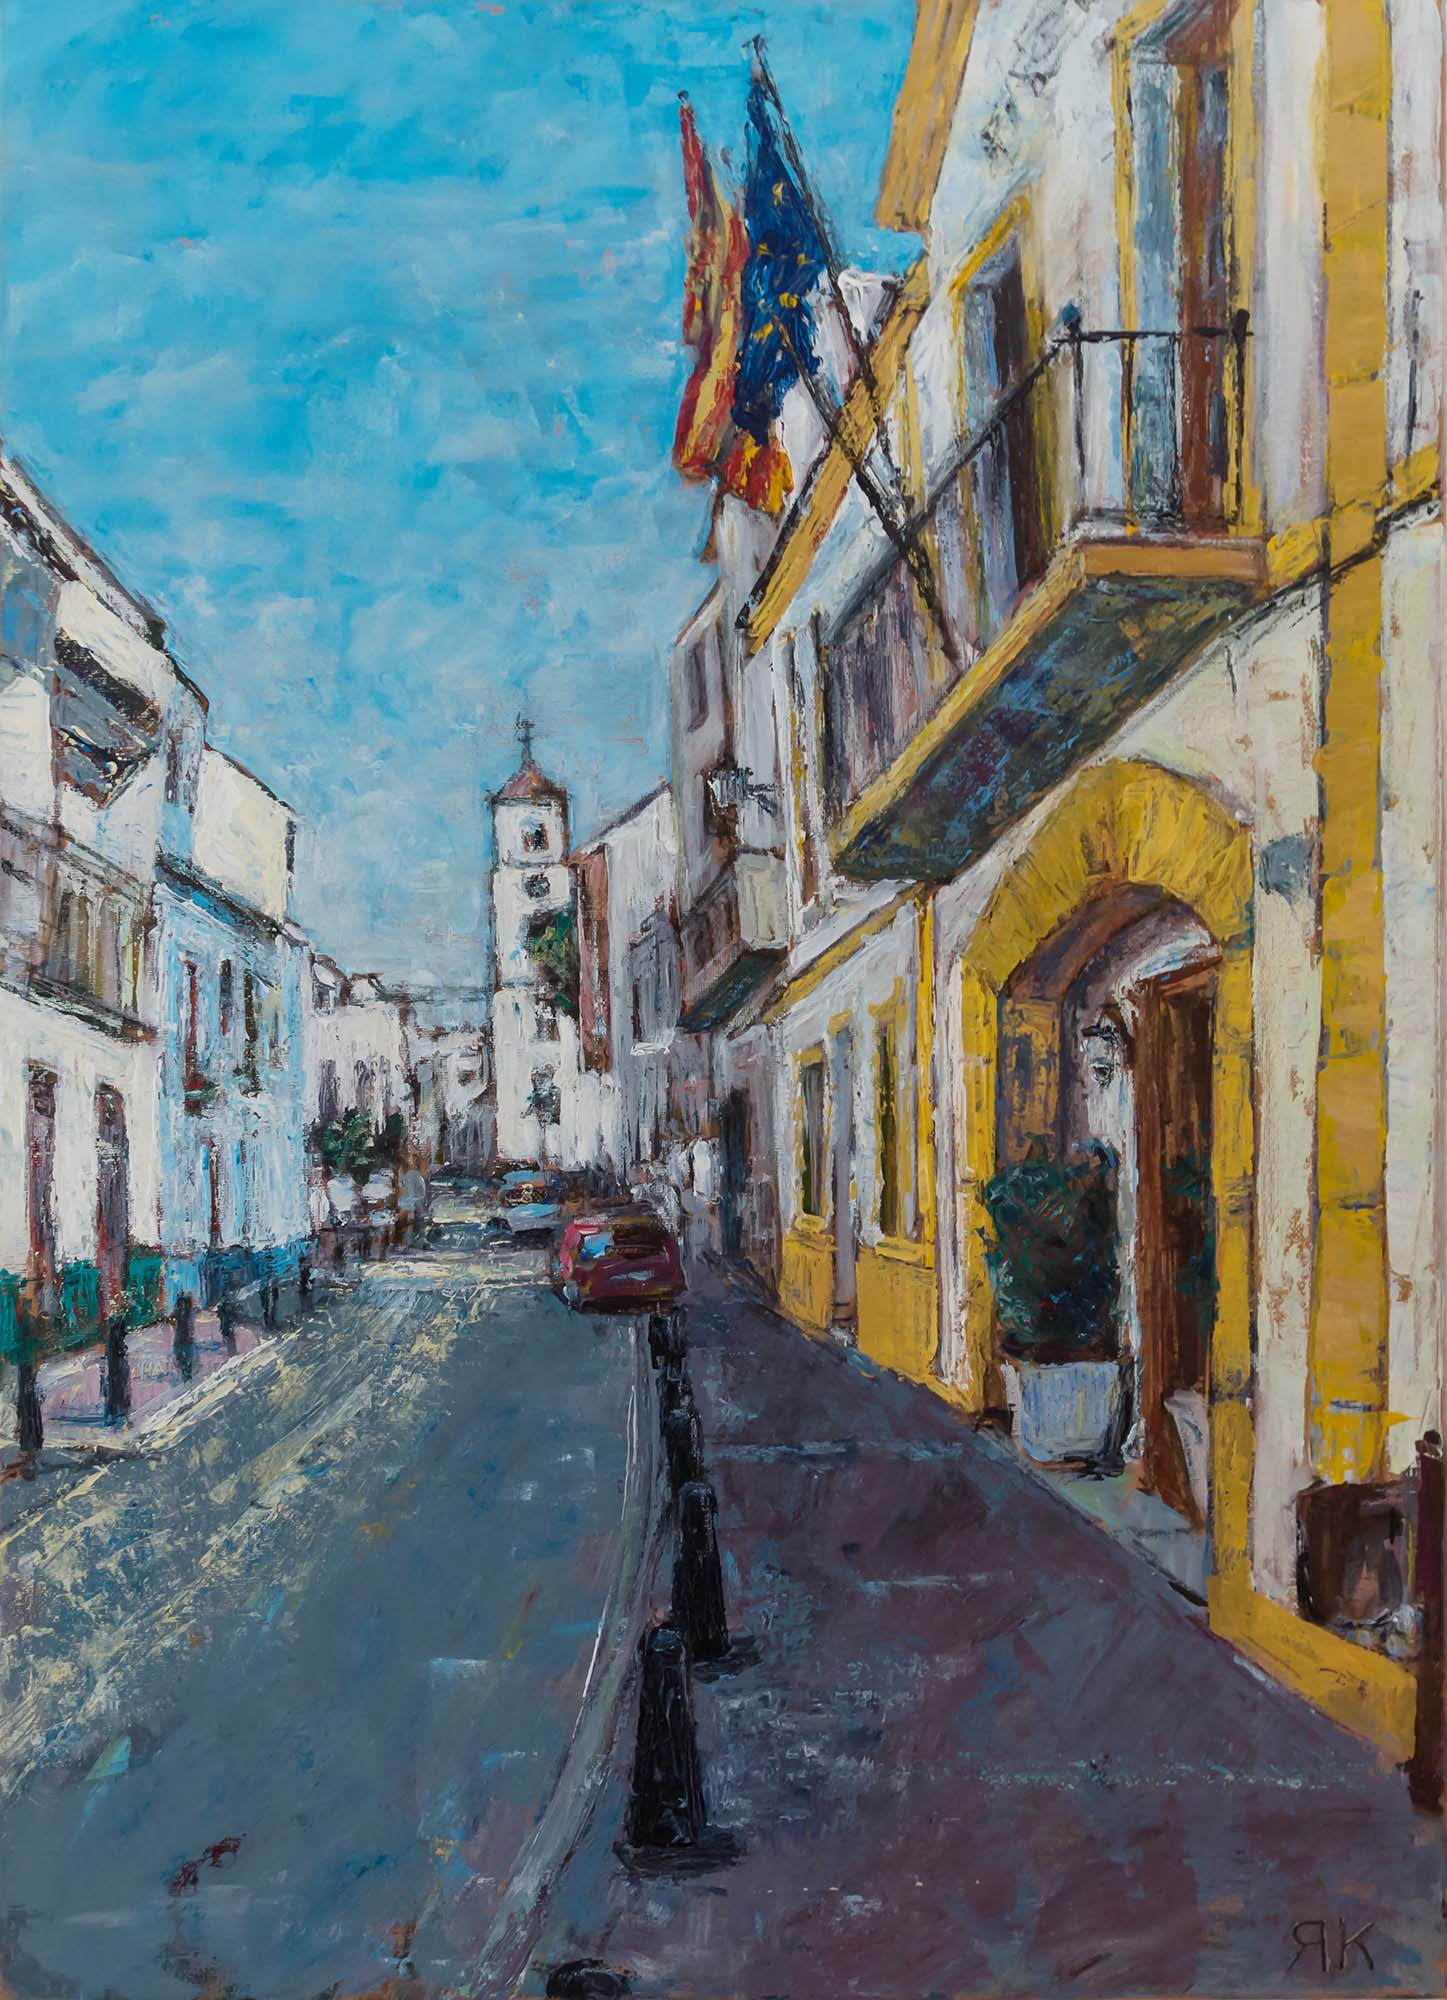 Spanish street with flags and church tower by Ria Kieboom